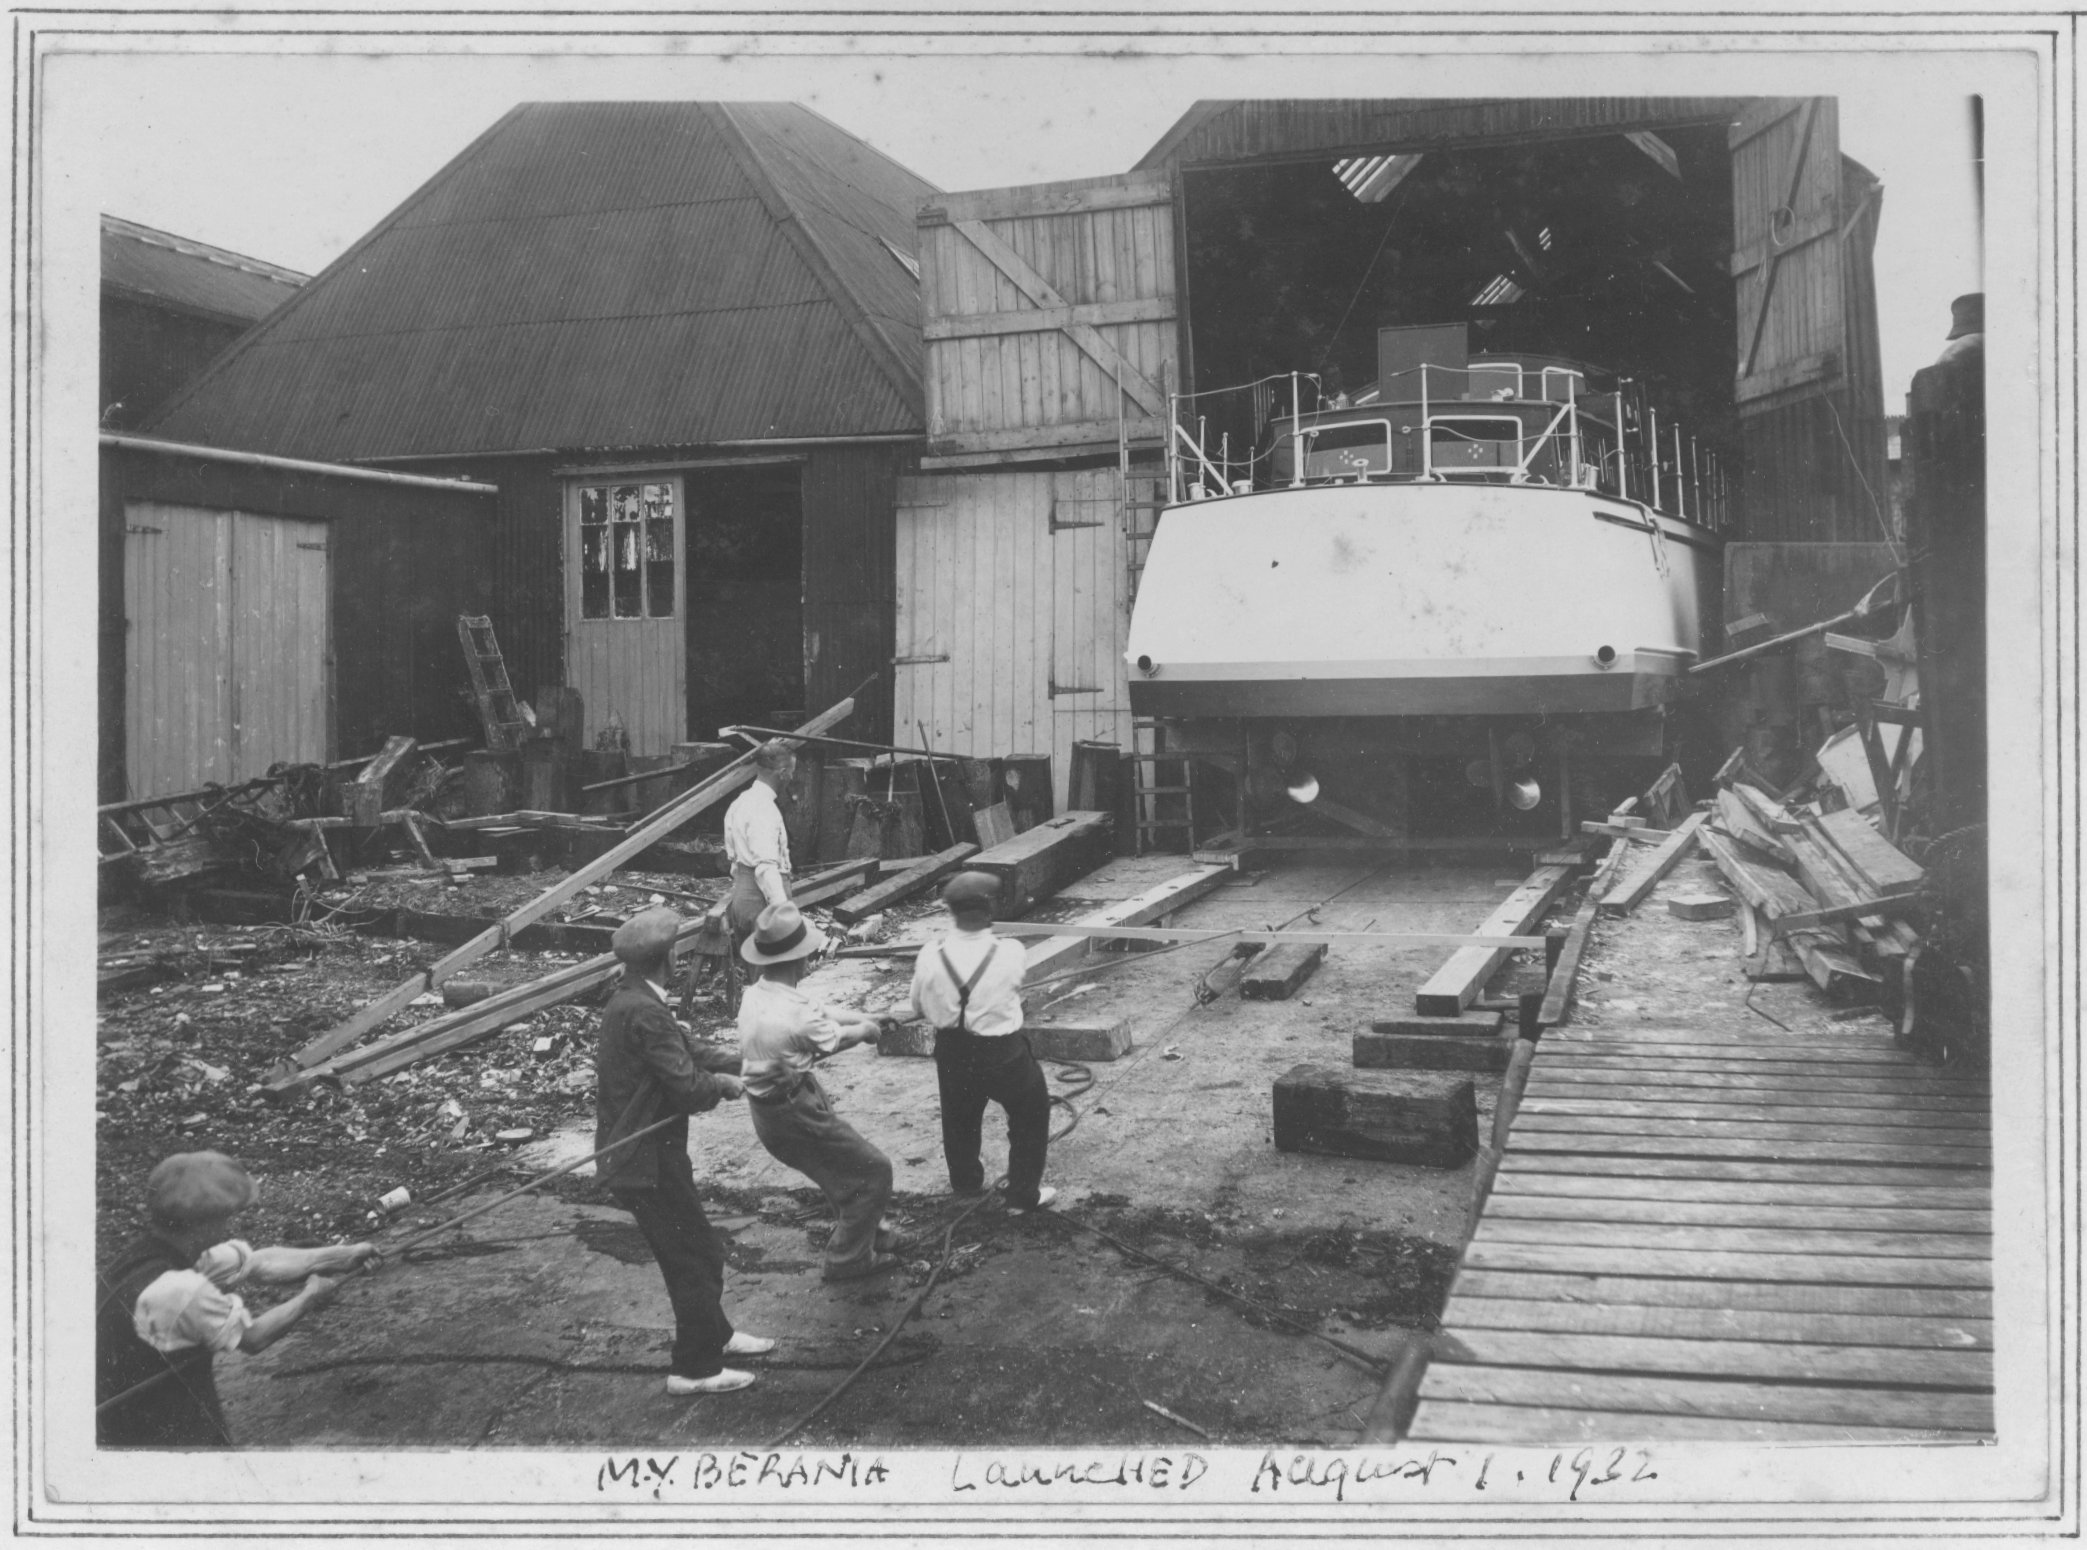 Launching Berania Aug 1 1932